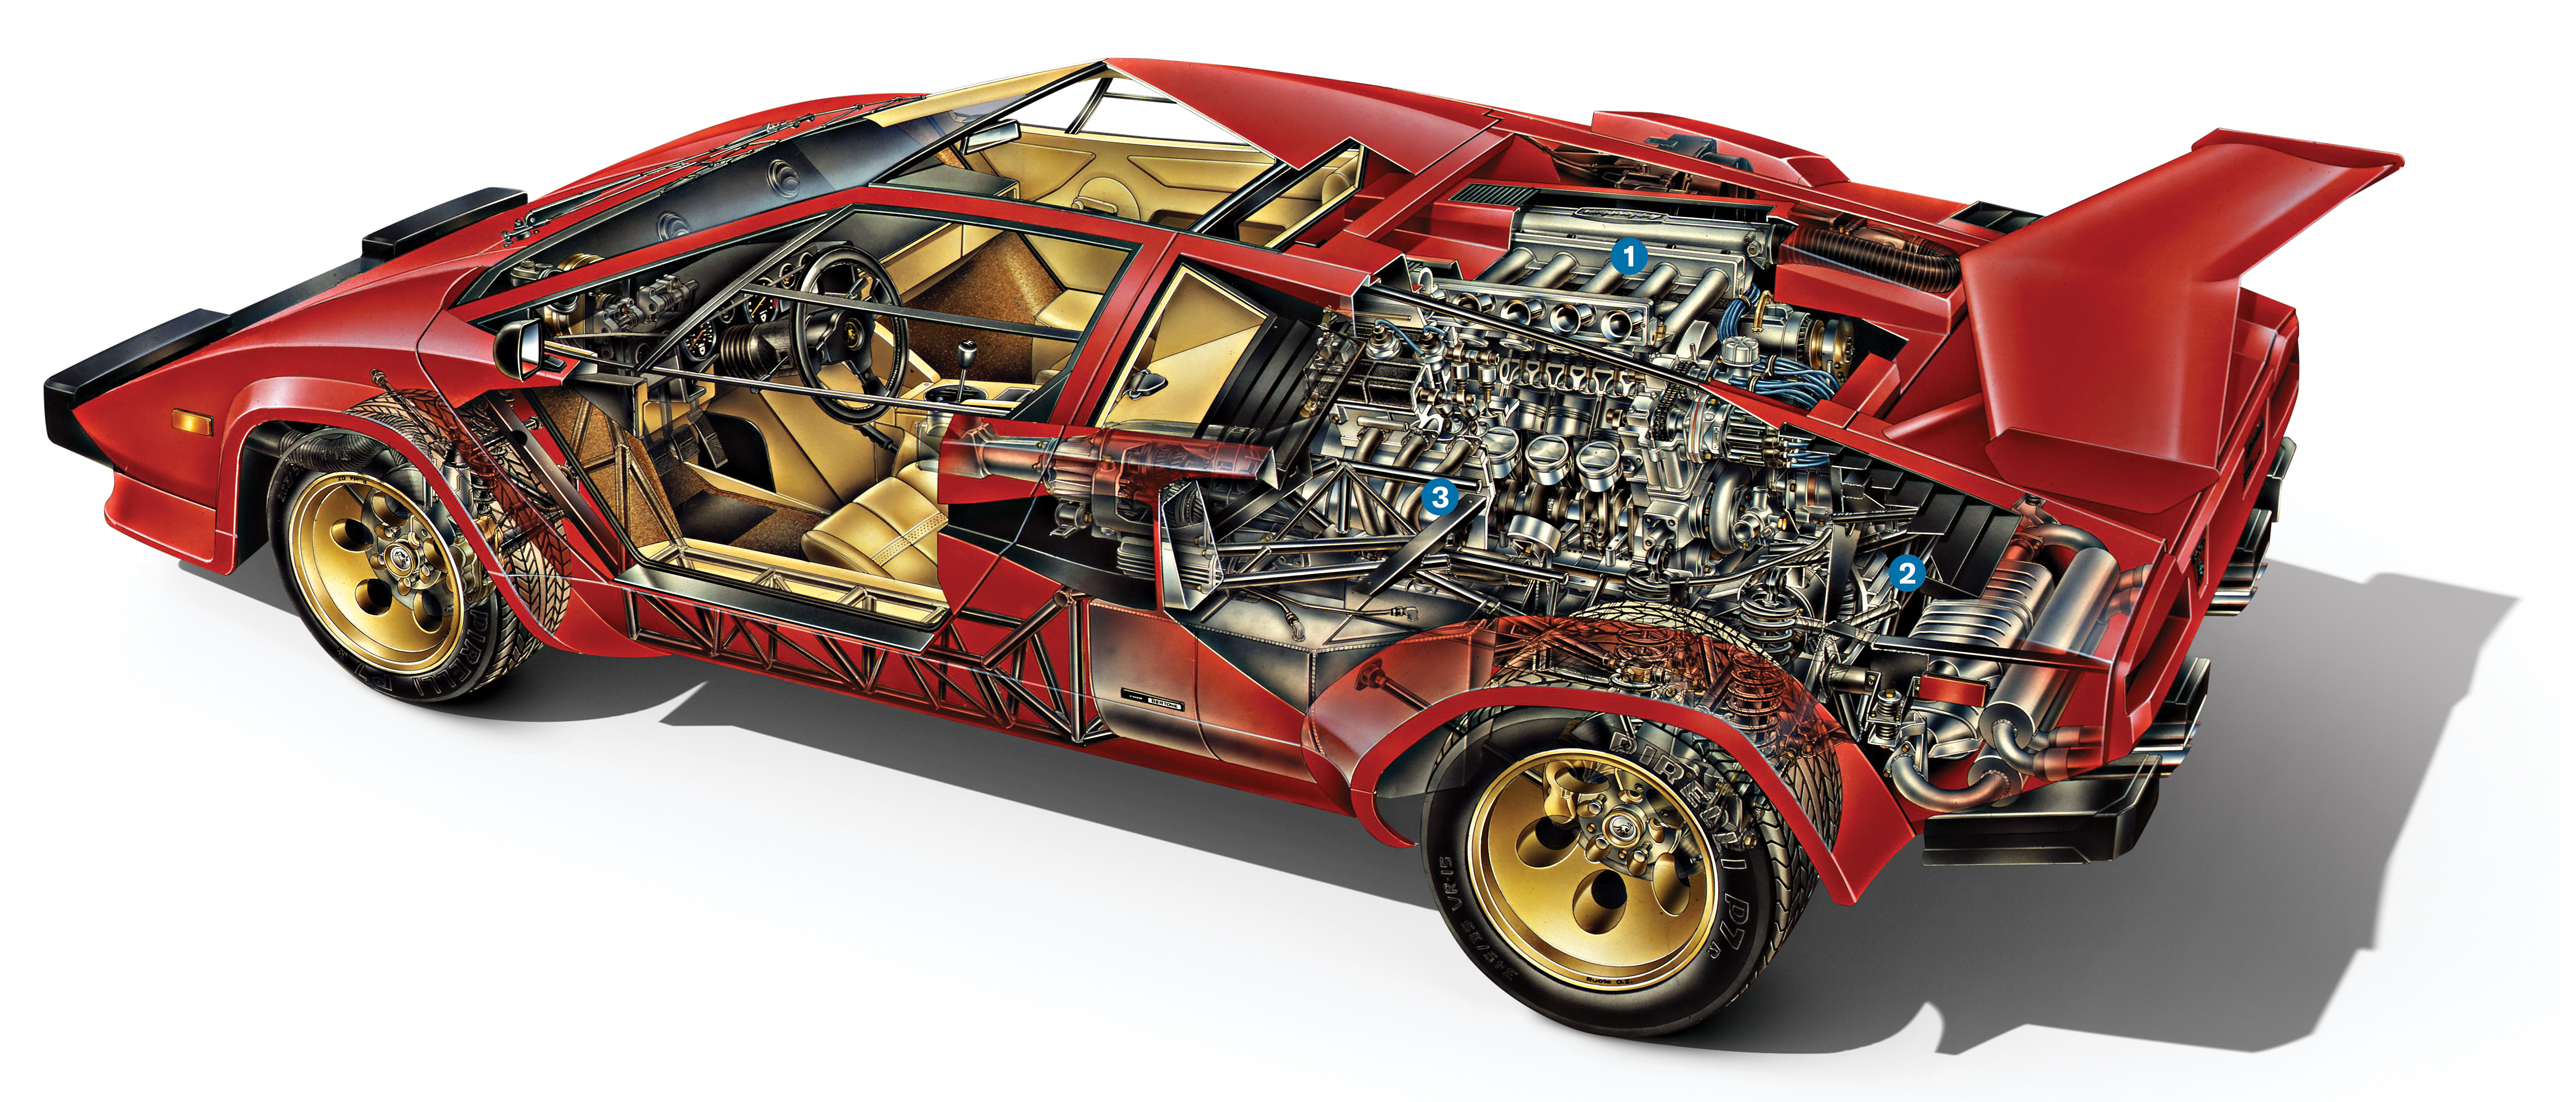 Ferruccio V12 Lamborghini Engine countach transparent graphic